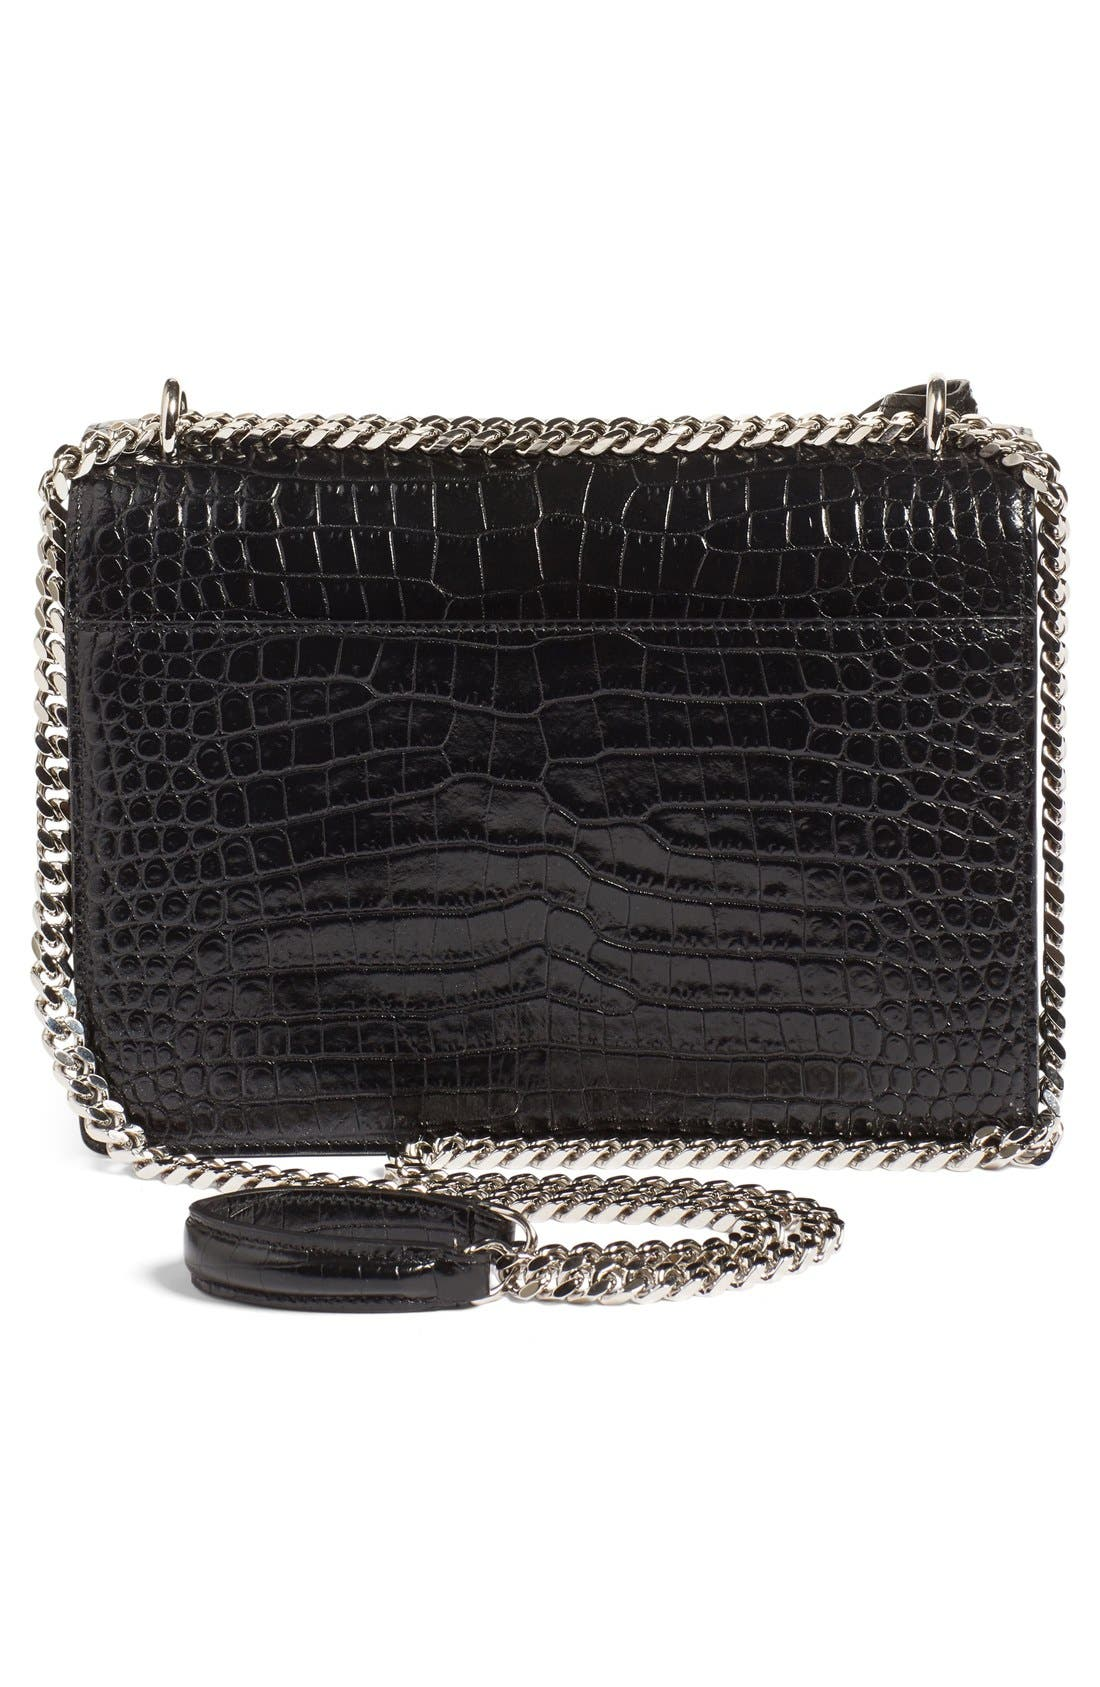 'Medium Monogram Sunset' Croc Embossed Leather Shoulder Bag,                             Alternate thumbnail 3, color,                             NERO